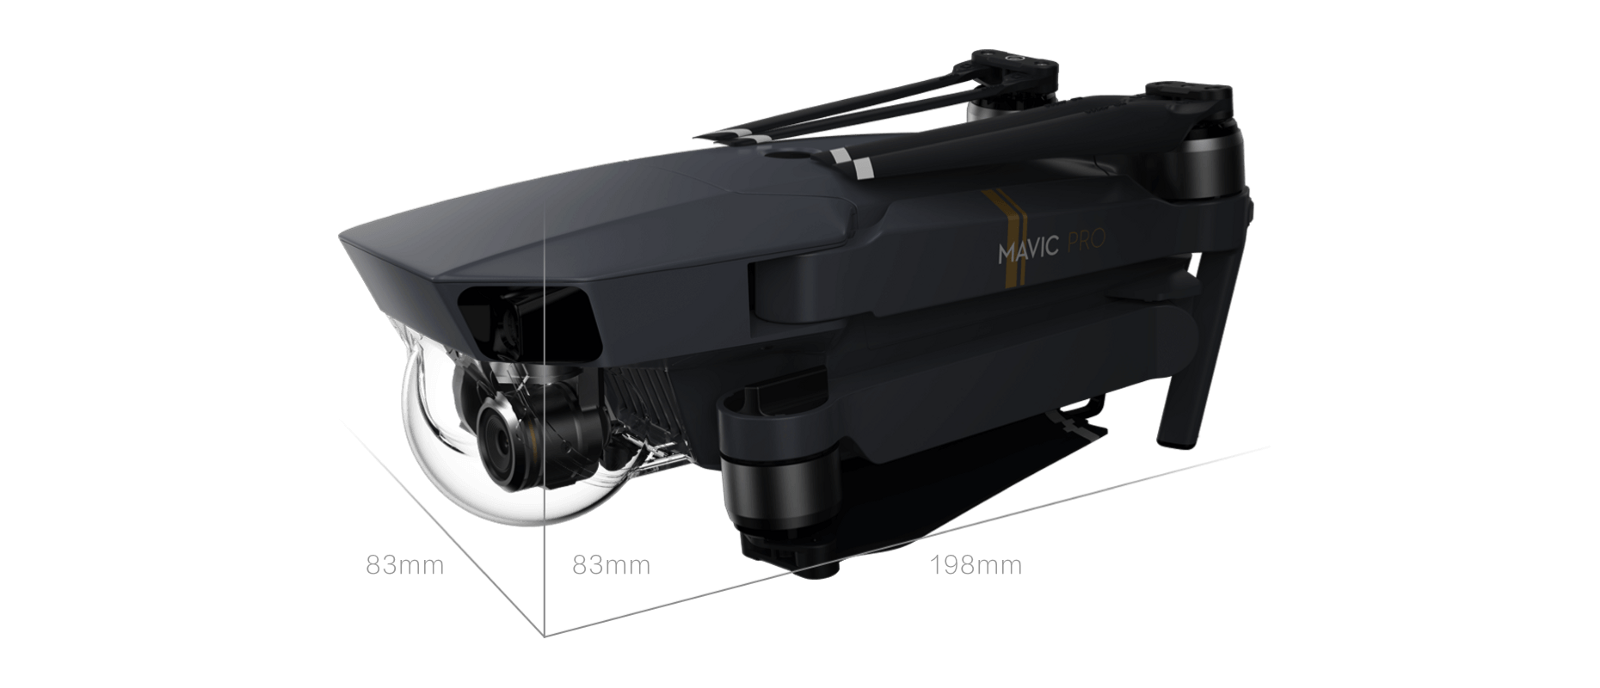 Dji Mavic Pro Has Very Small Size